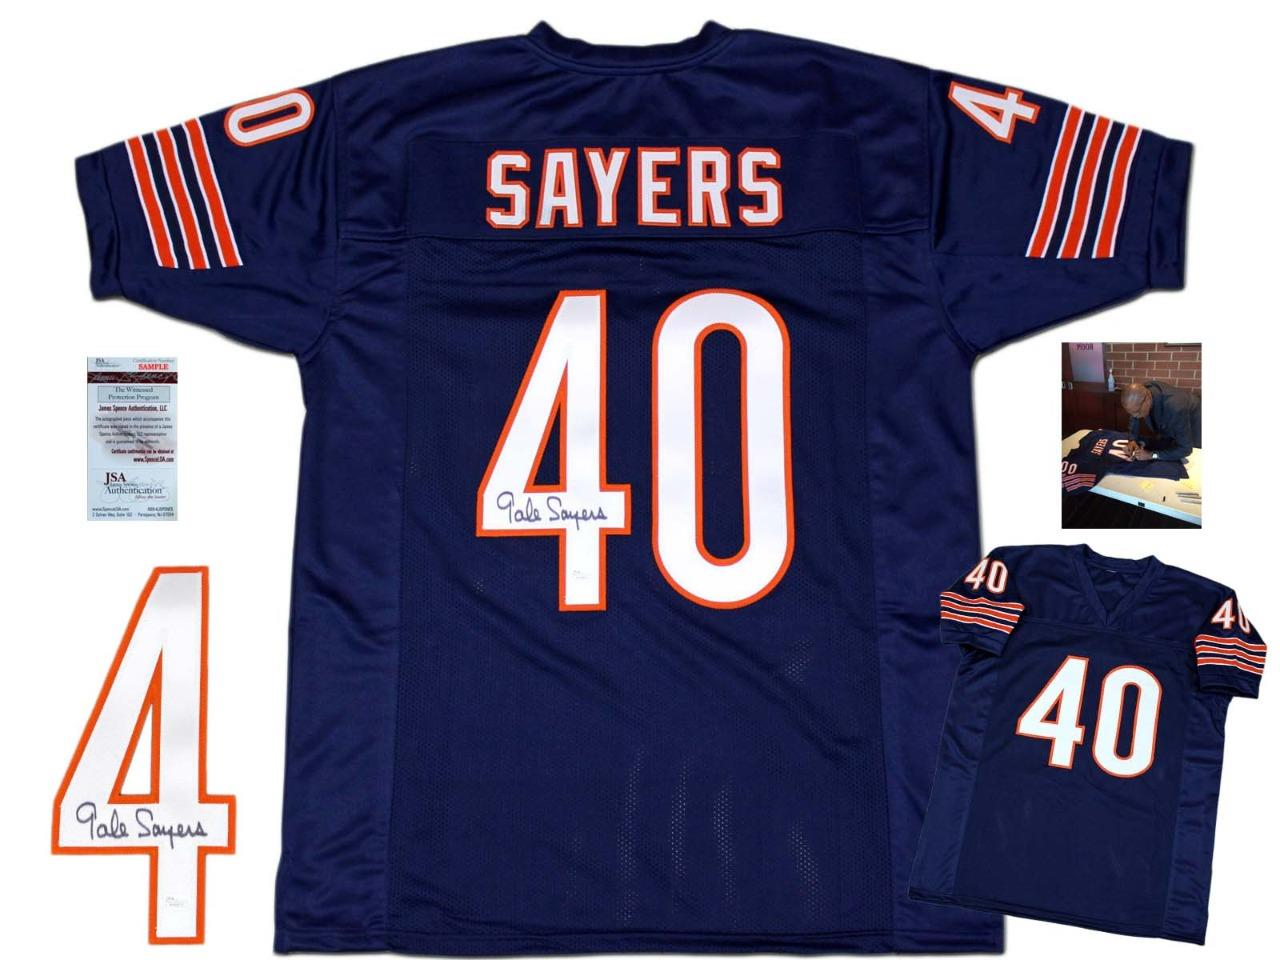 Gale Sayers Autographed Signed Jersey - Navy - JSA Authentic